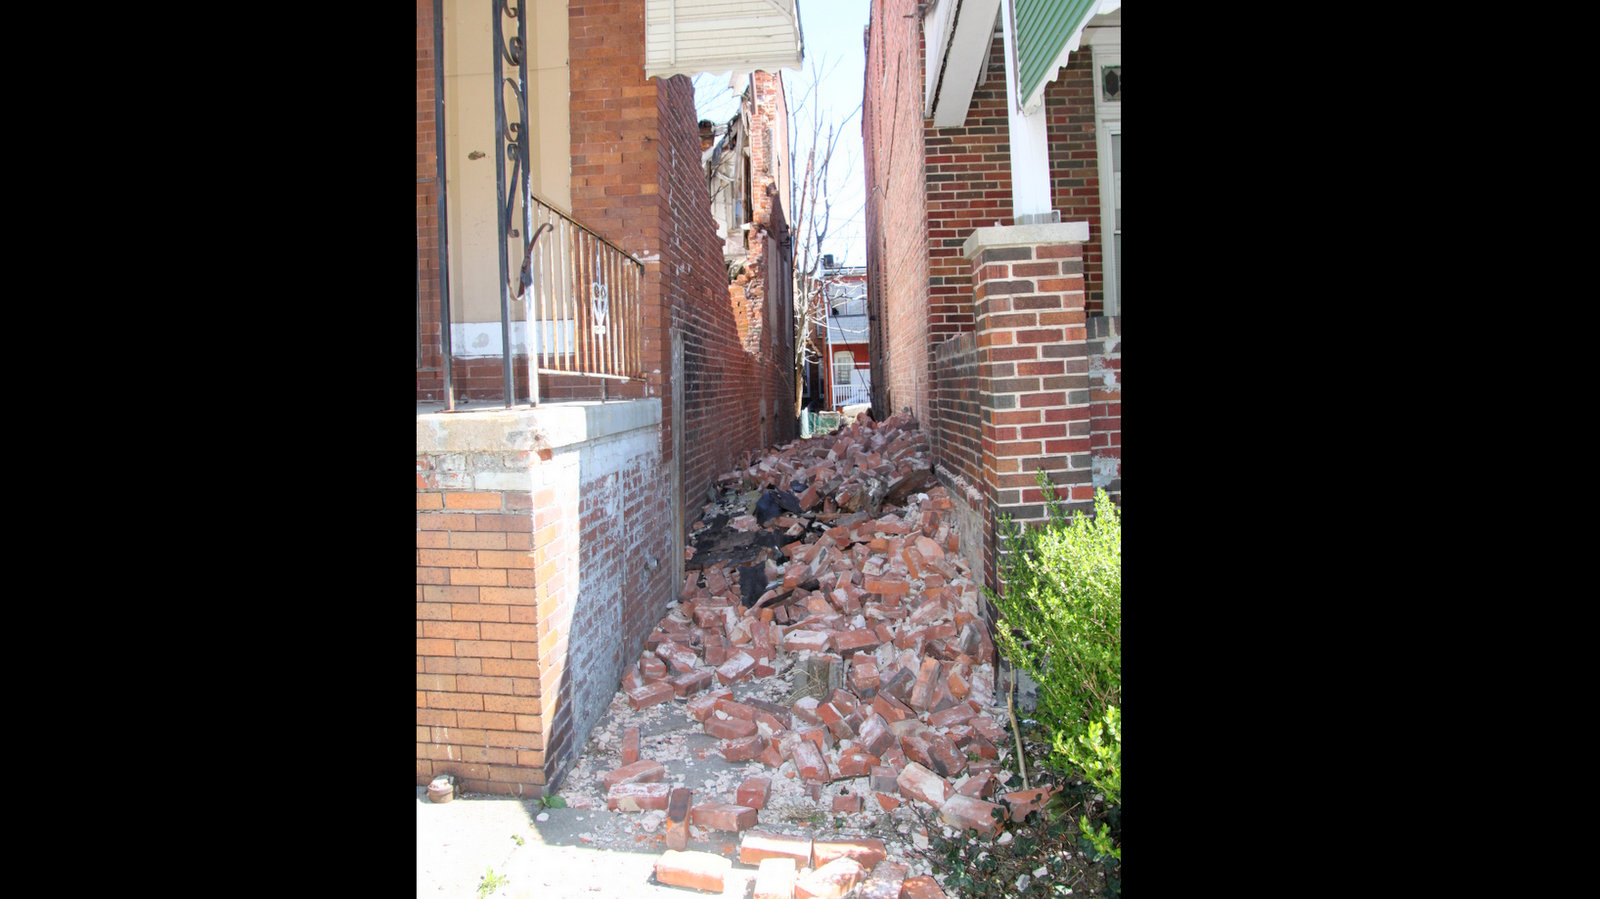 The gap between 1625 North Payson Street, which collapsed, and 1621 North Payson Street. (Fern Shen)